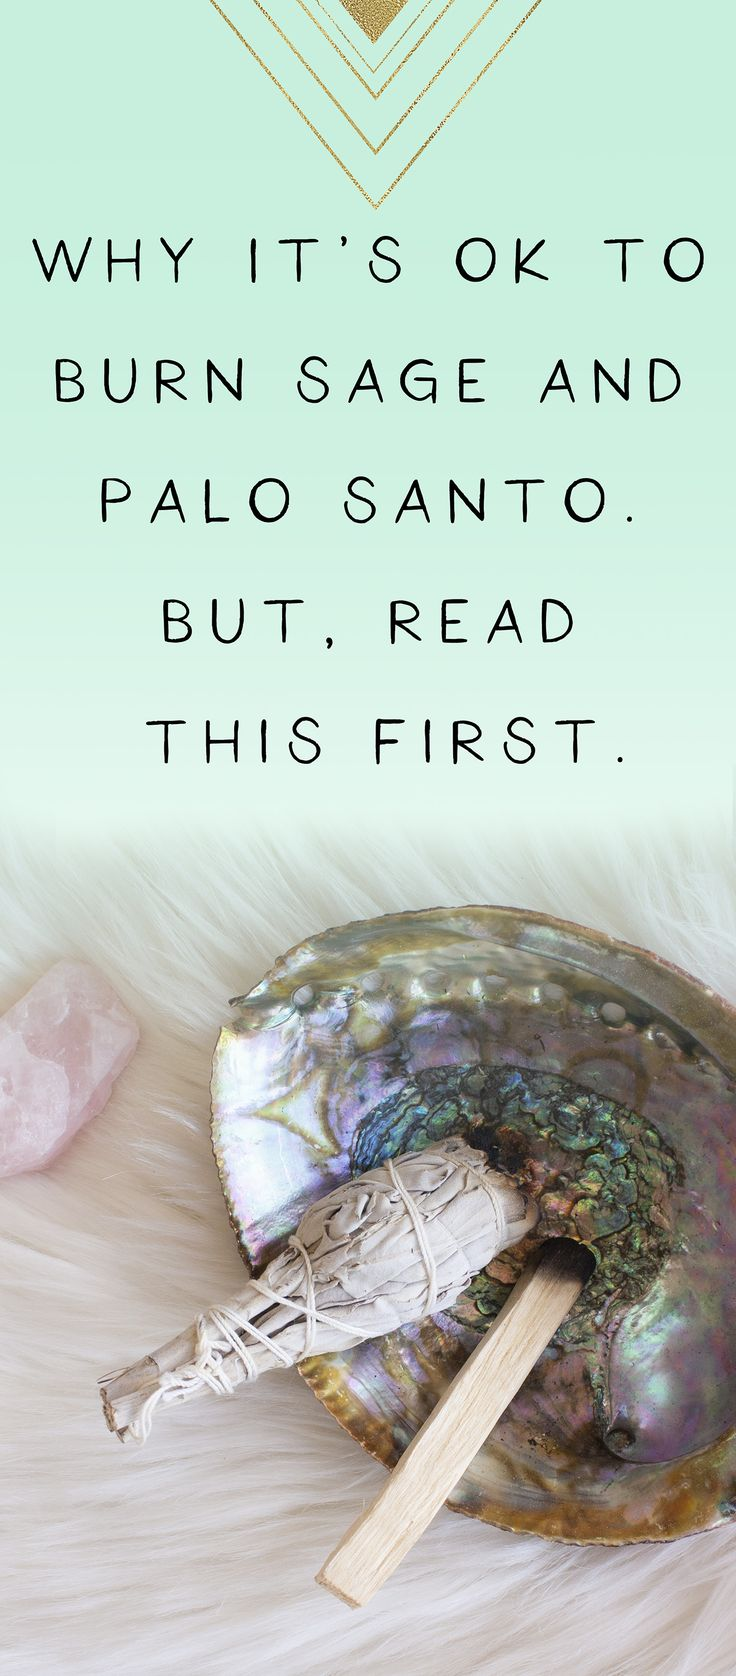 Why It's OK to Burn Sage and Palo Santo But, Read This